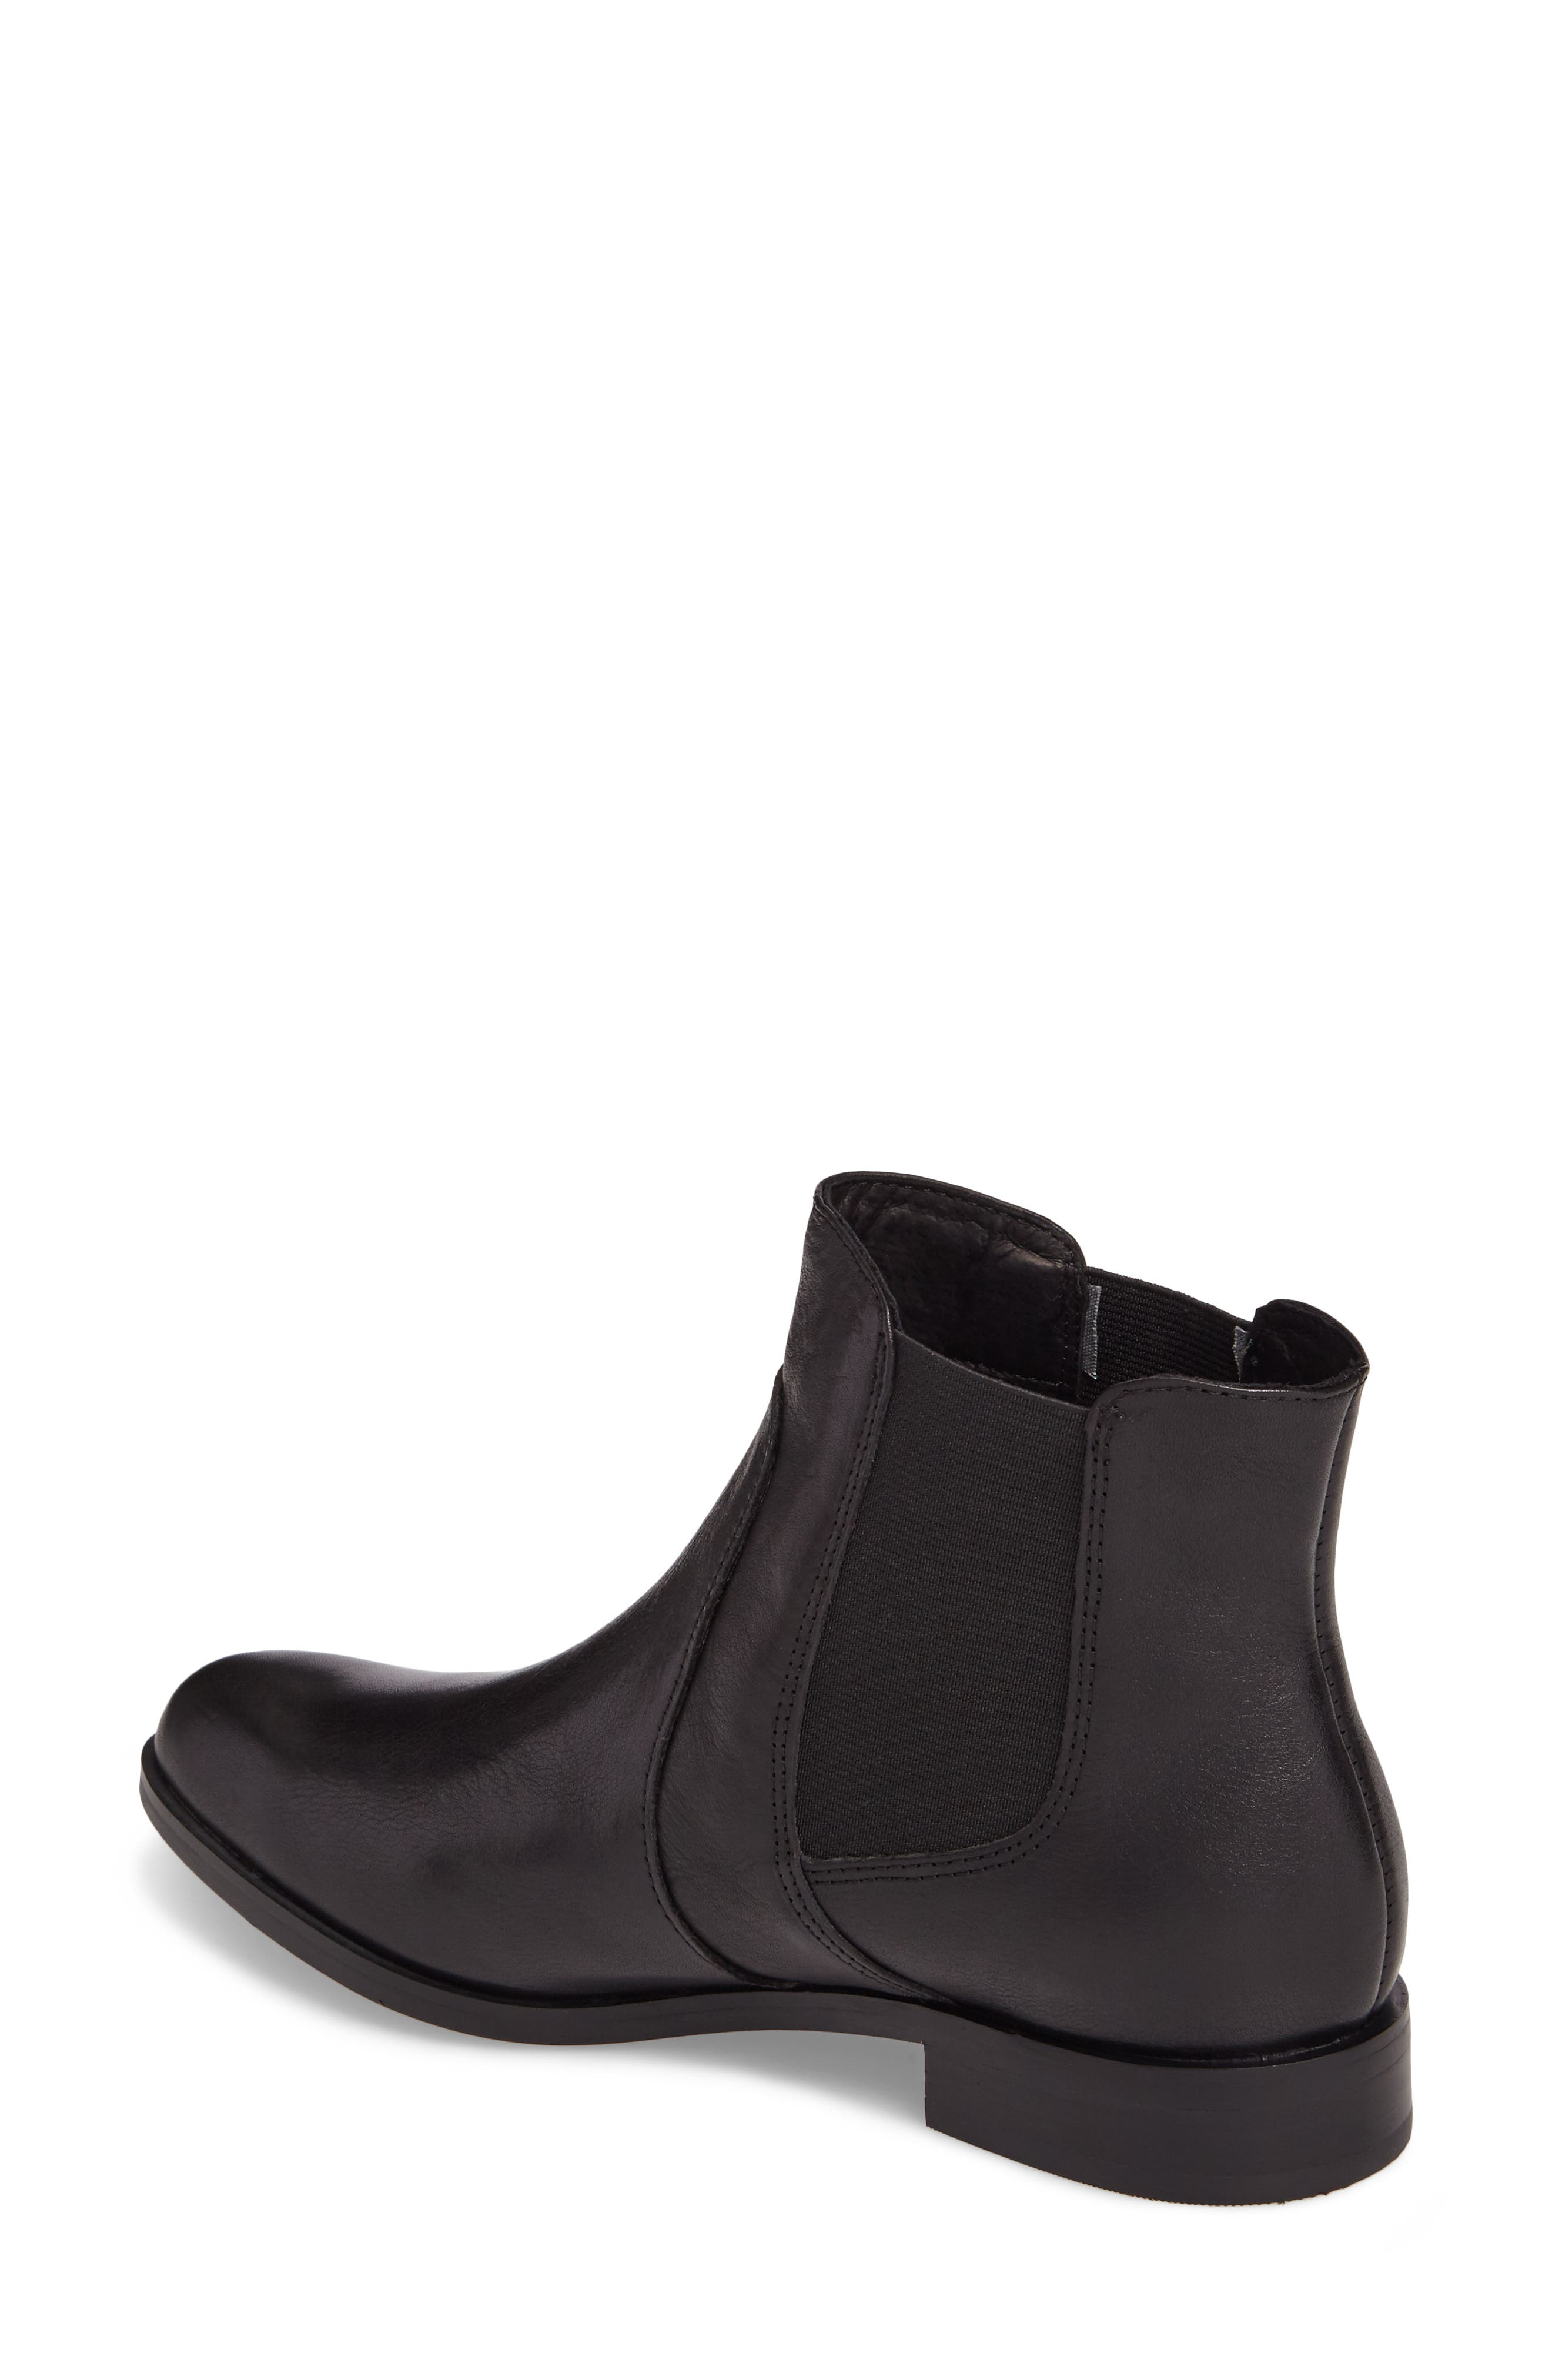 ISOLÁ, Mora Bootie, Alternate thumbnail 2, color, BLACK LEATHER